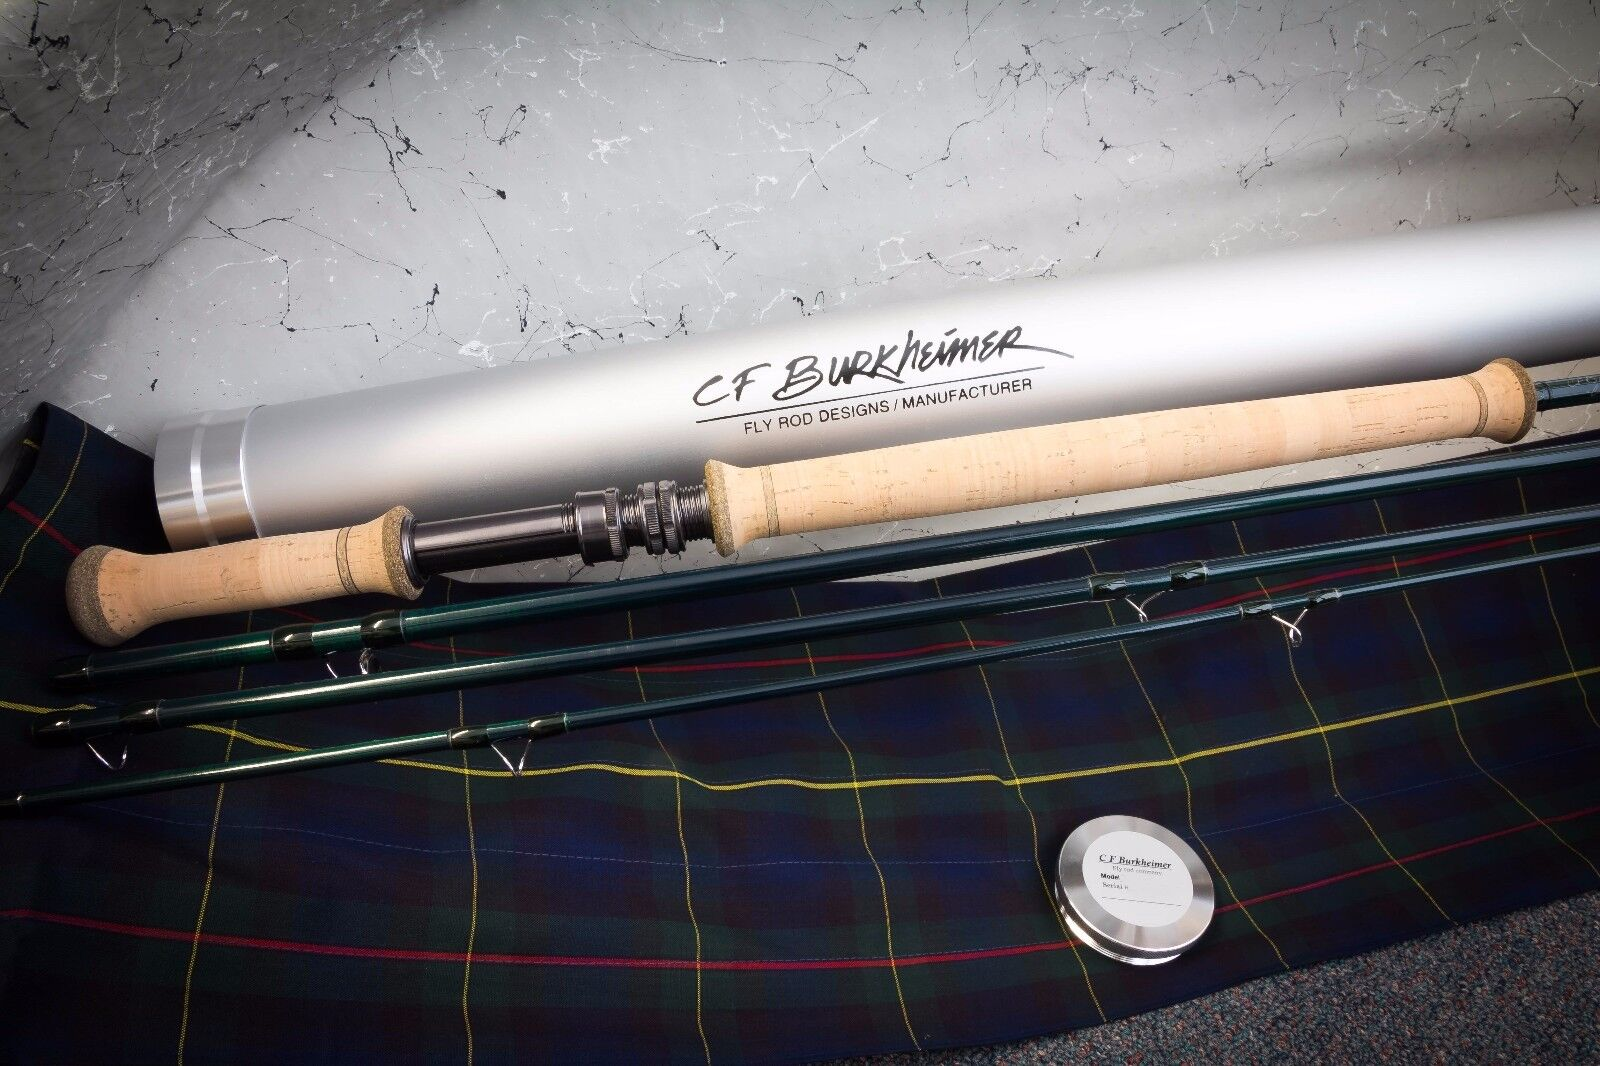 CF Burkheimer 7117-4 Spey Rod - Classic Finish - New - FREE Shipping